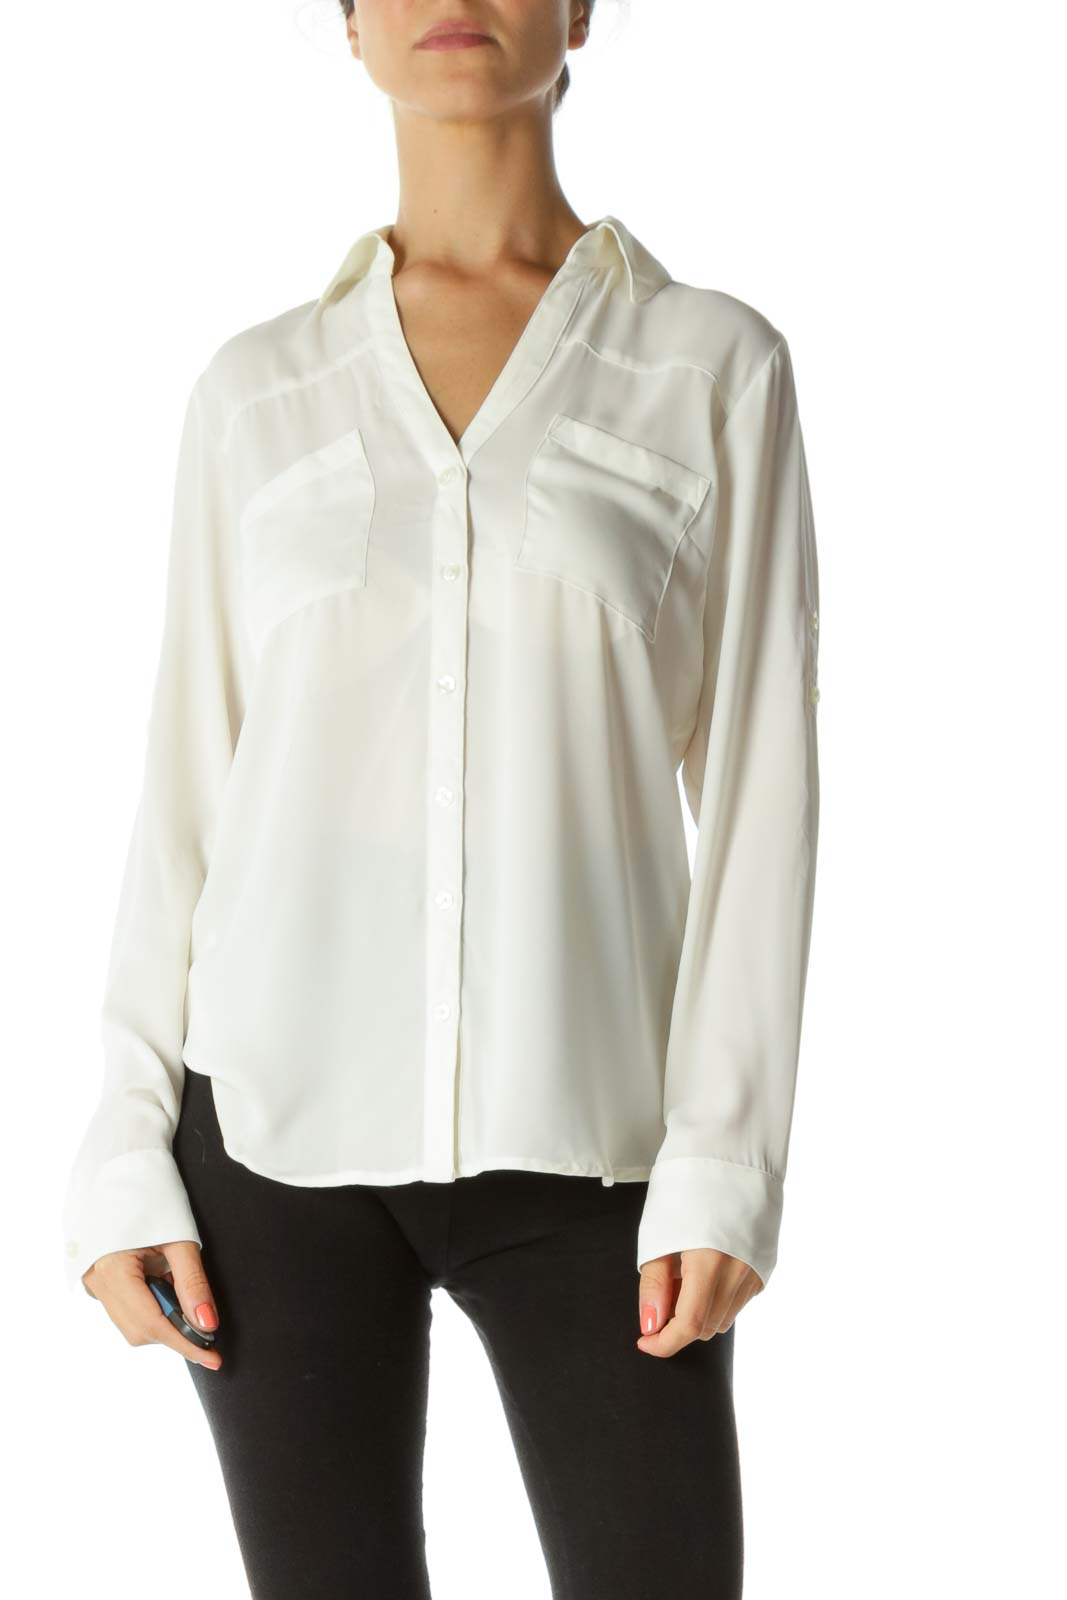 Cream Translucent Roll-Up Sleeves Pocketed Shirt